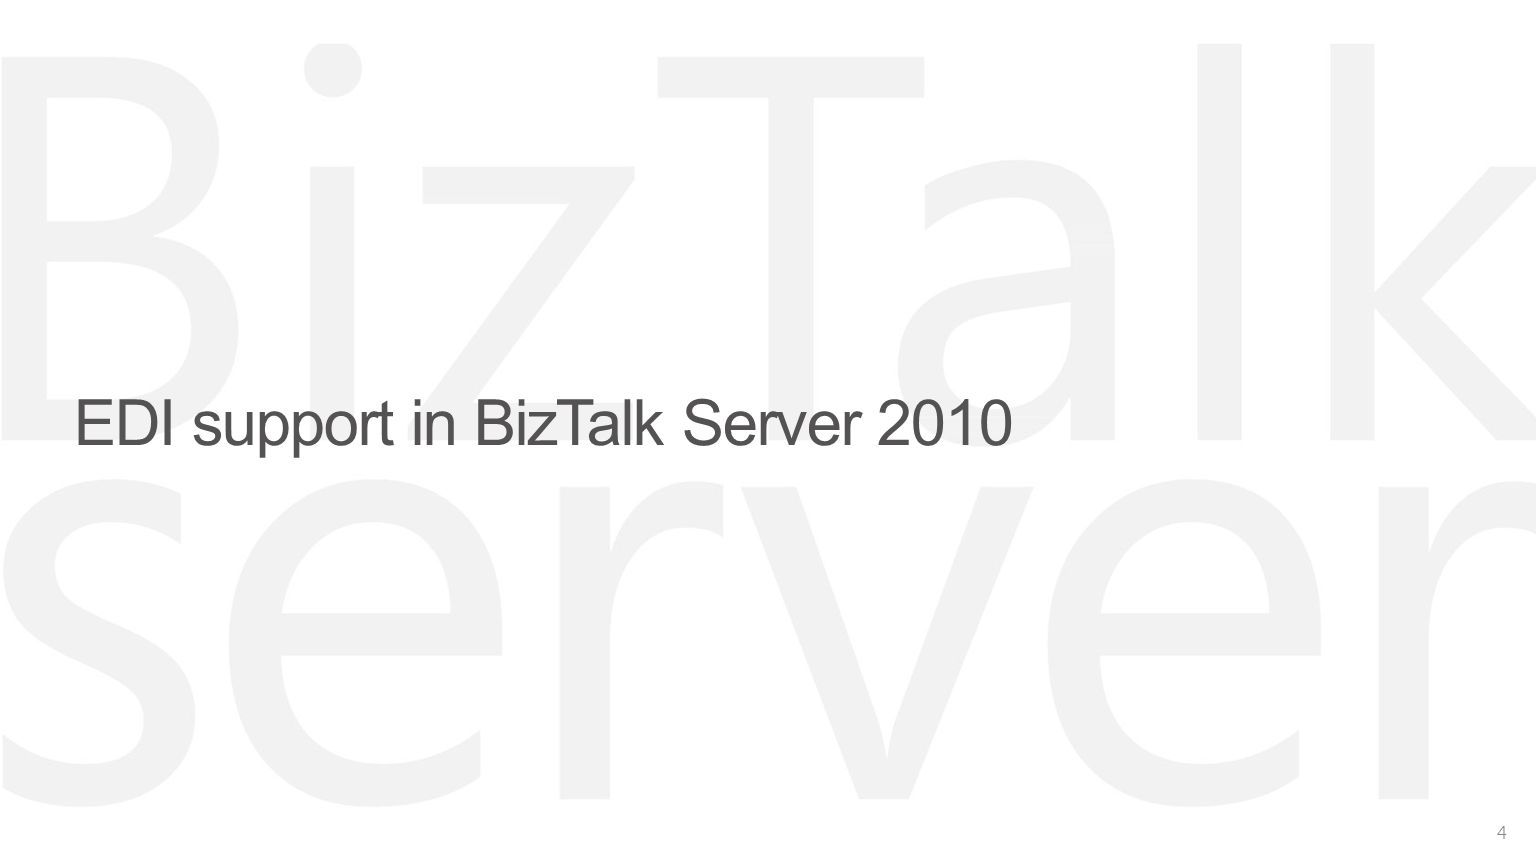 EDI support in BizTalk Server 2010 4